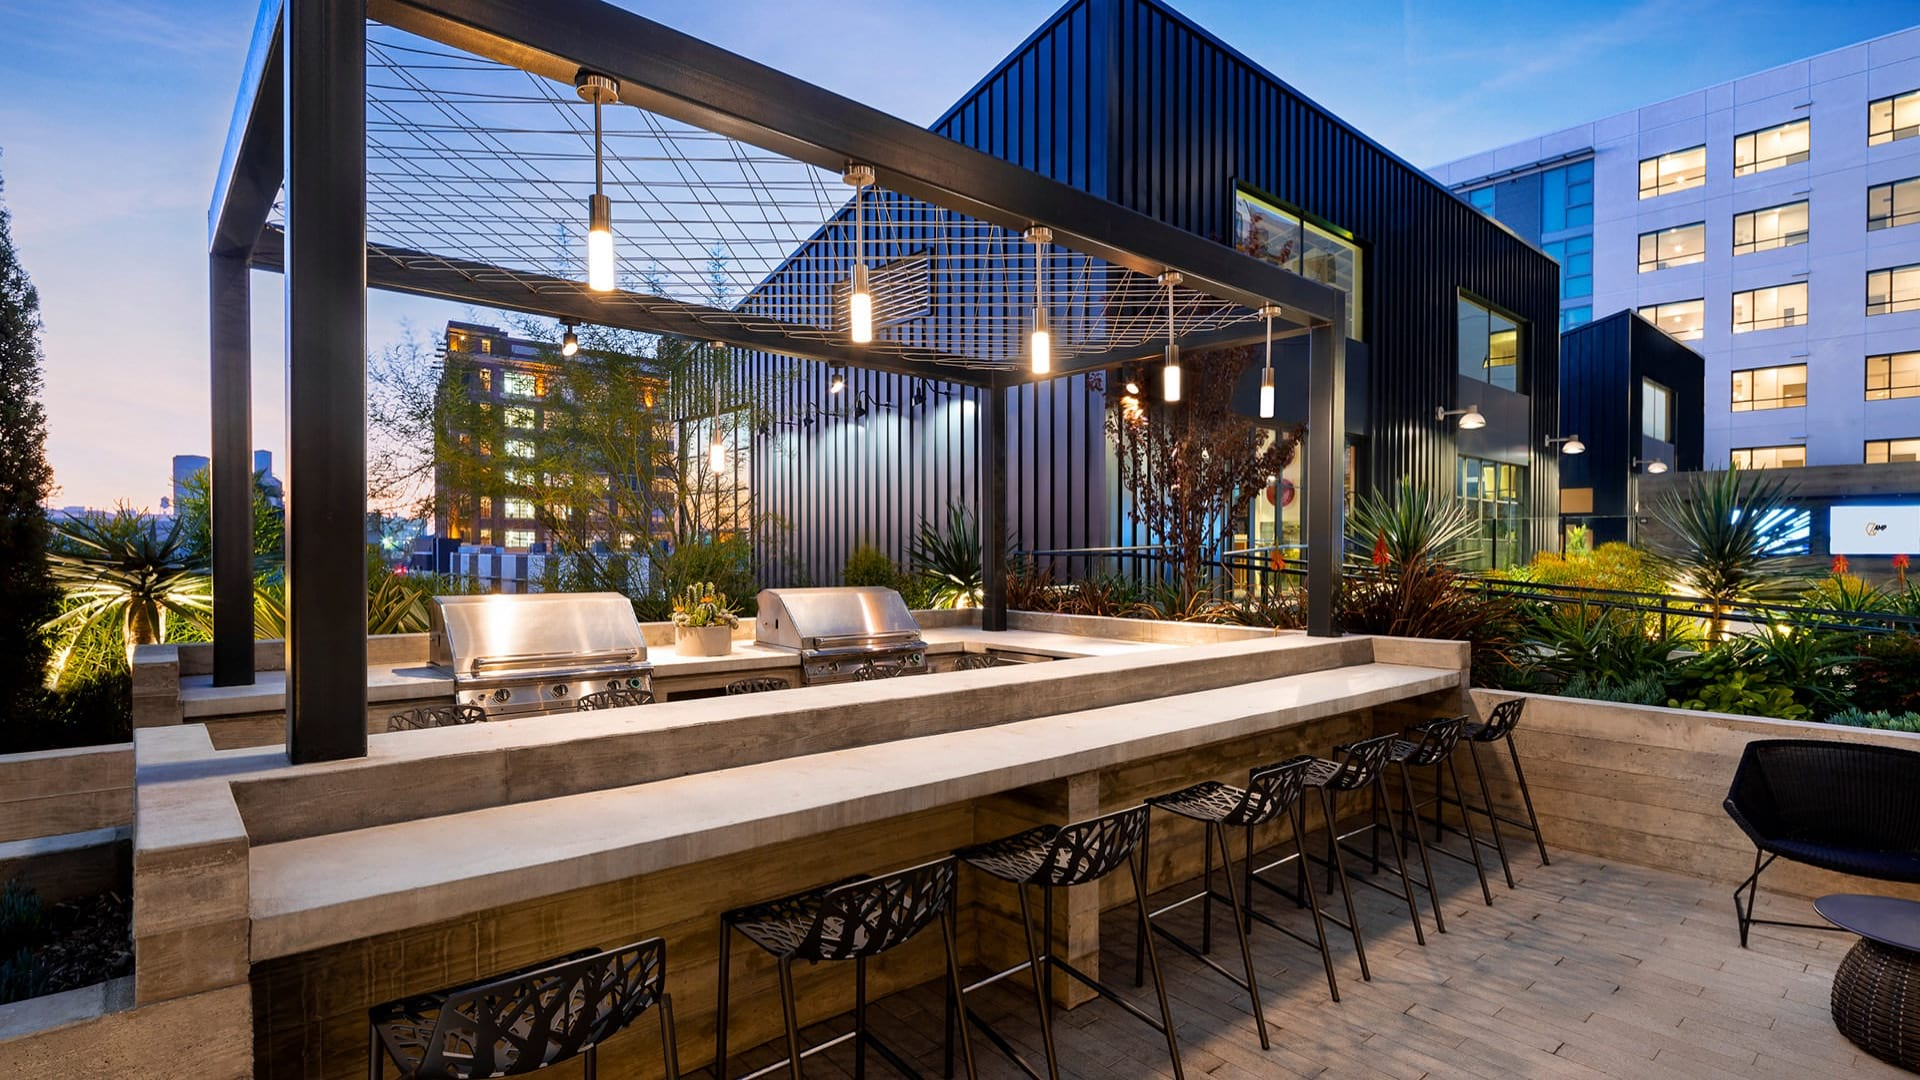 rooftop grill area and countertop seating